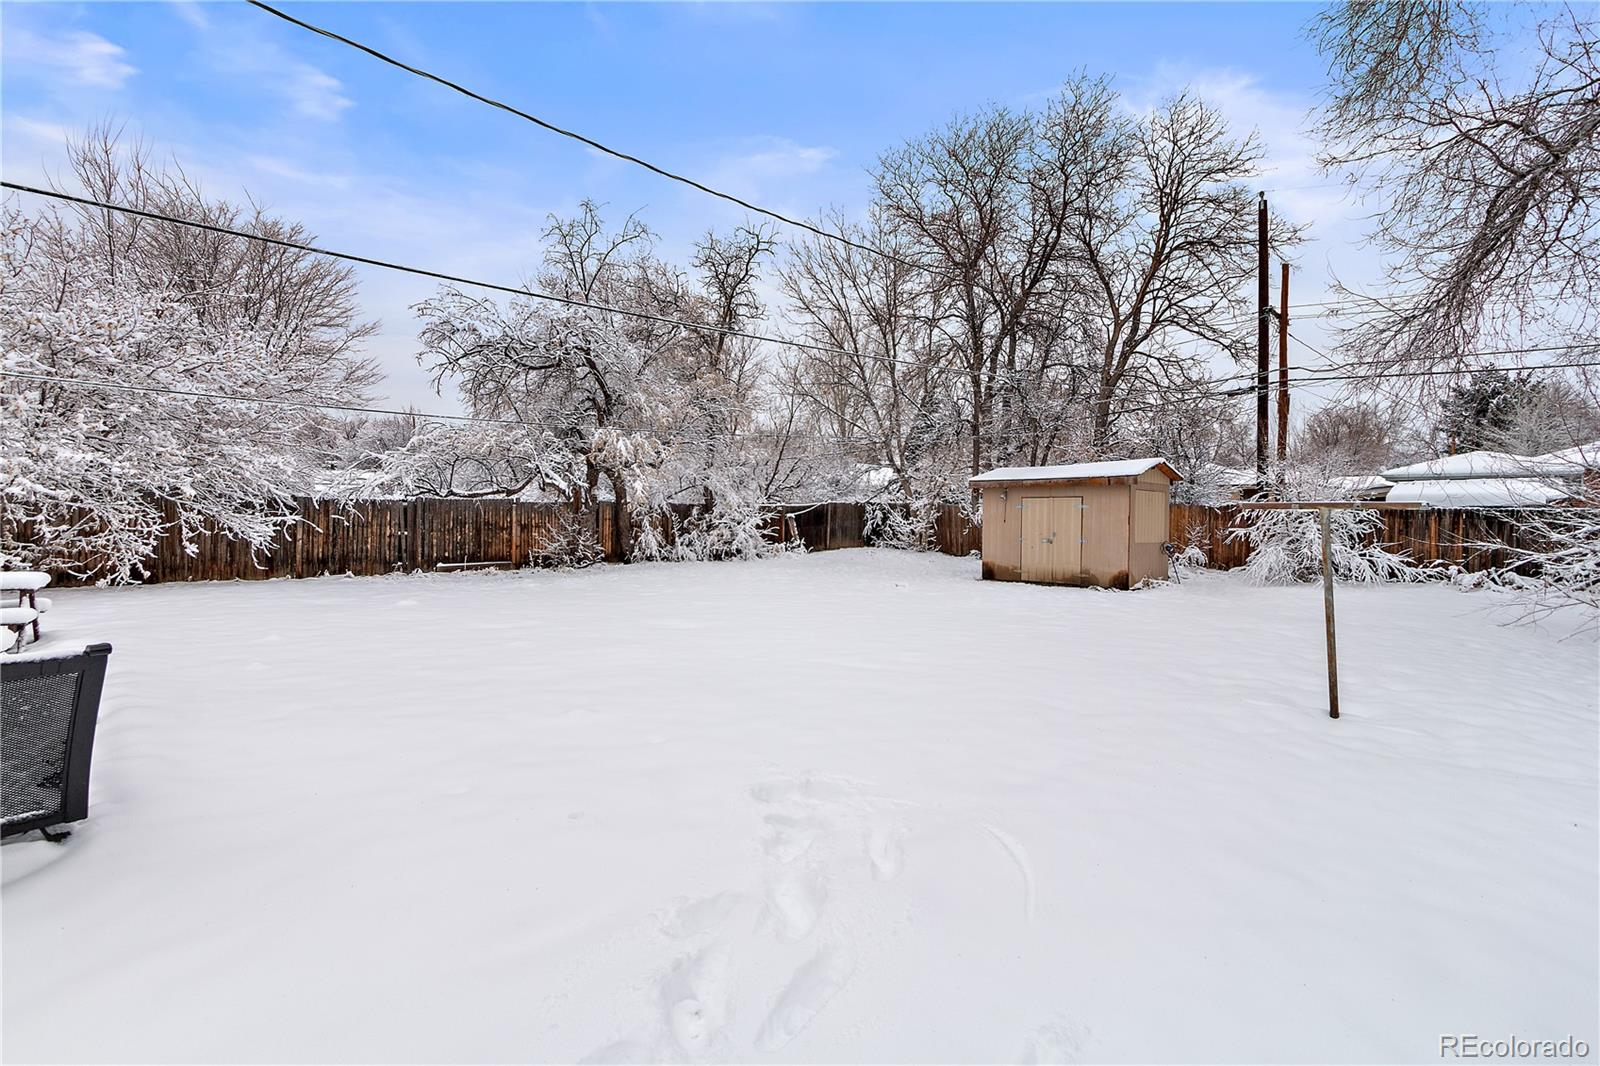 MLS# 5584211 - 24 - 8105 W 16th Place, Lakewood, CO 80214